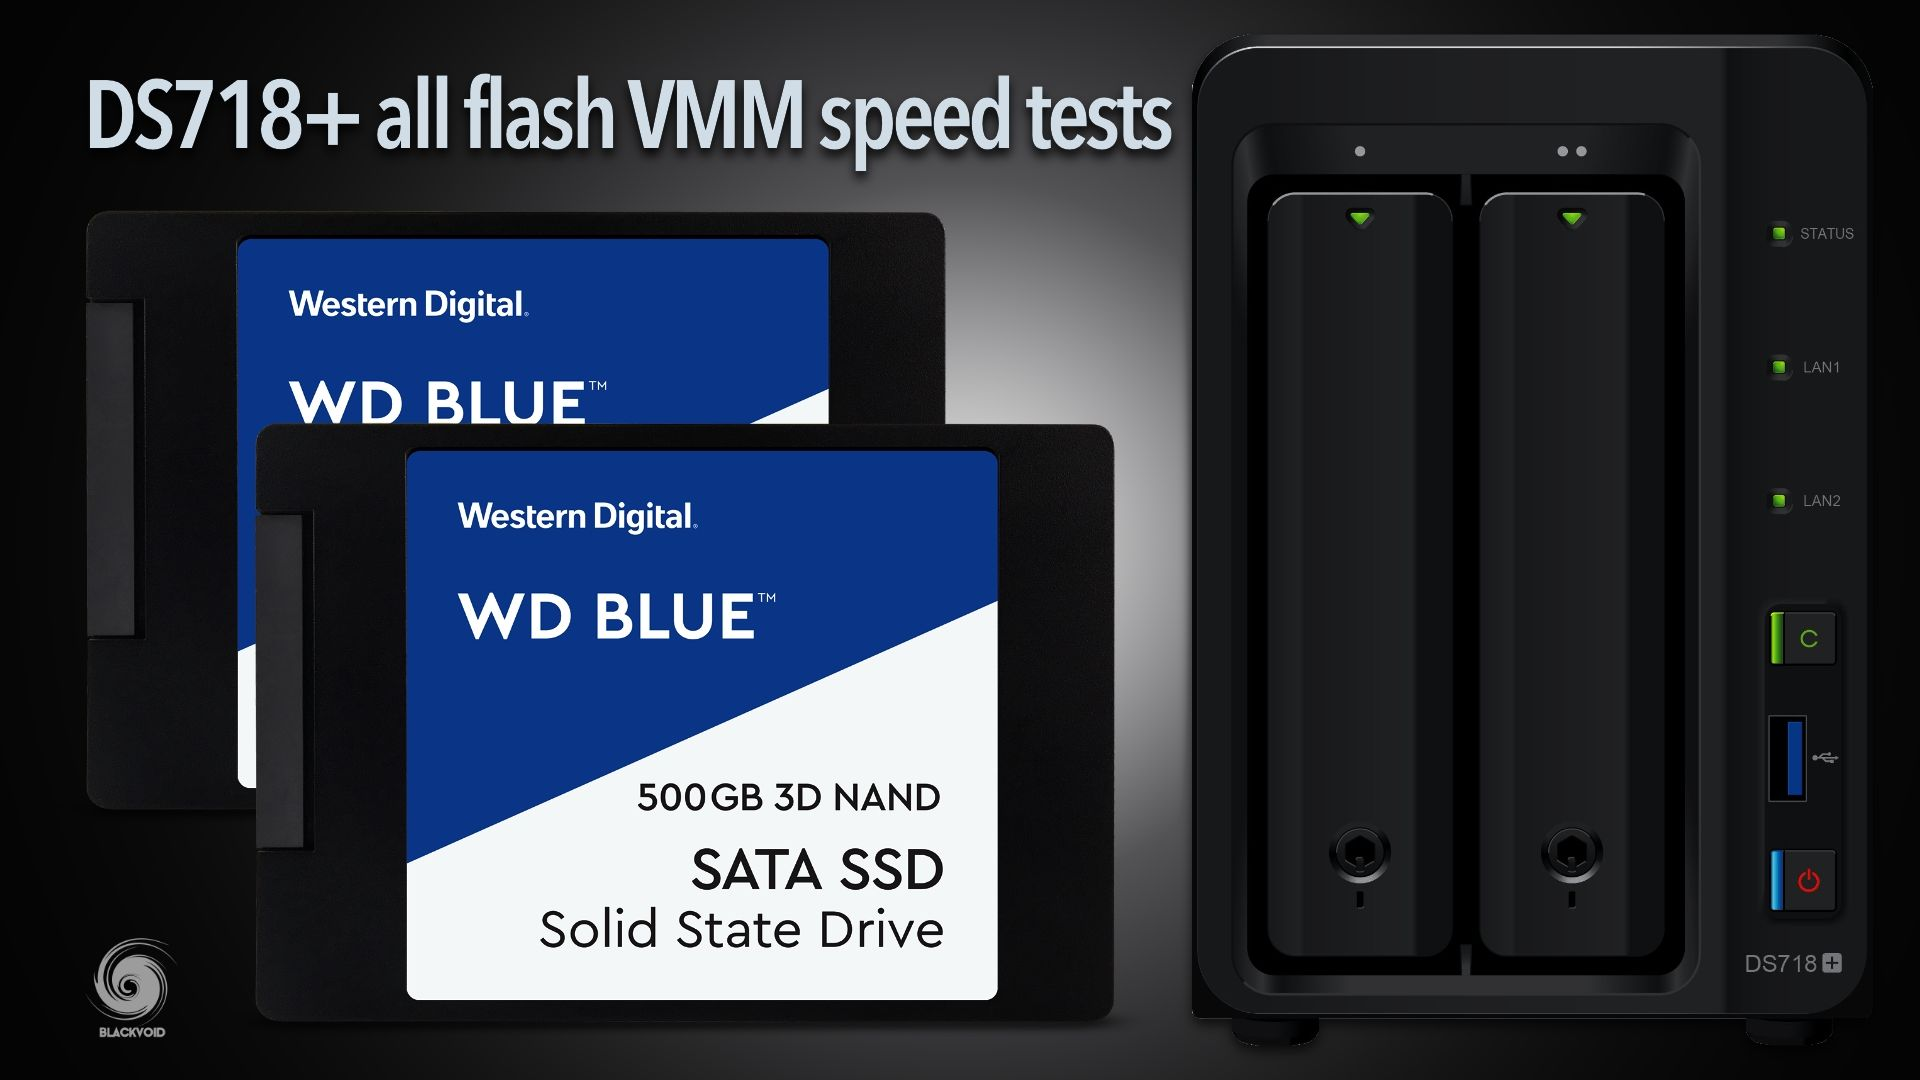 DS718+ all-flash VMM speed tests